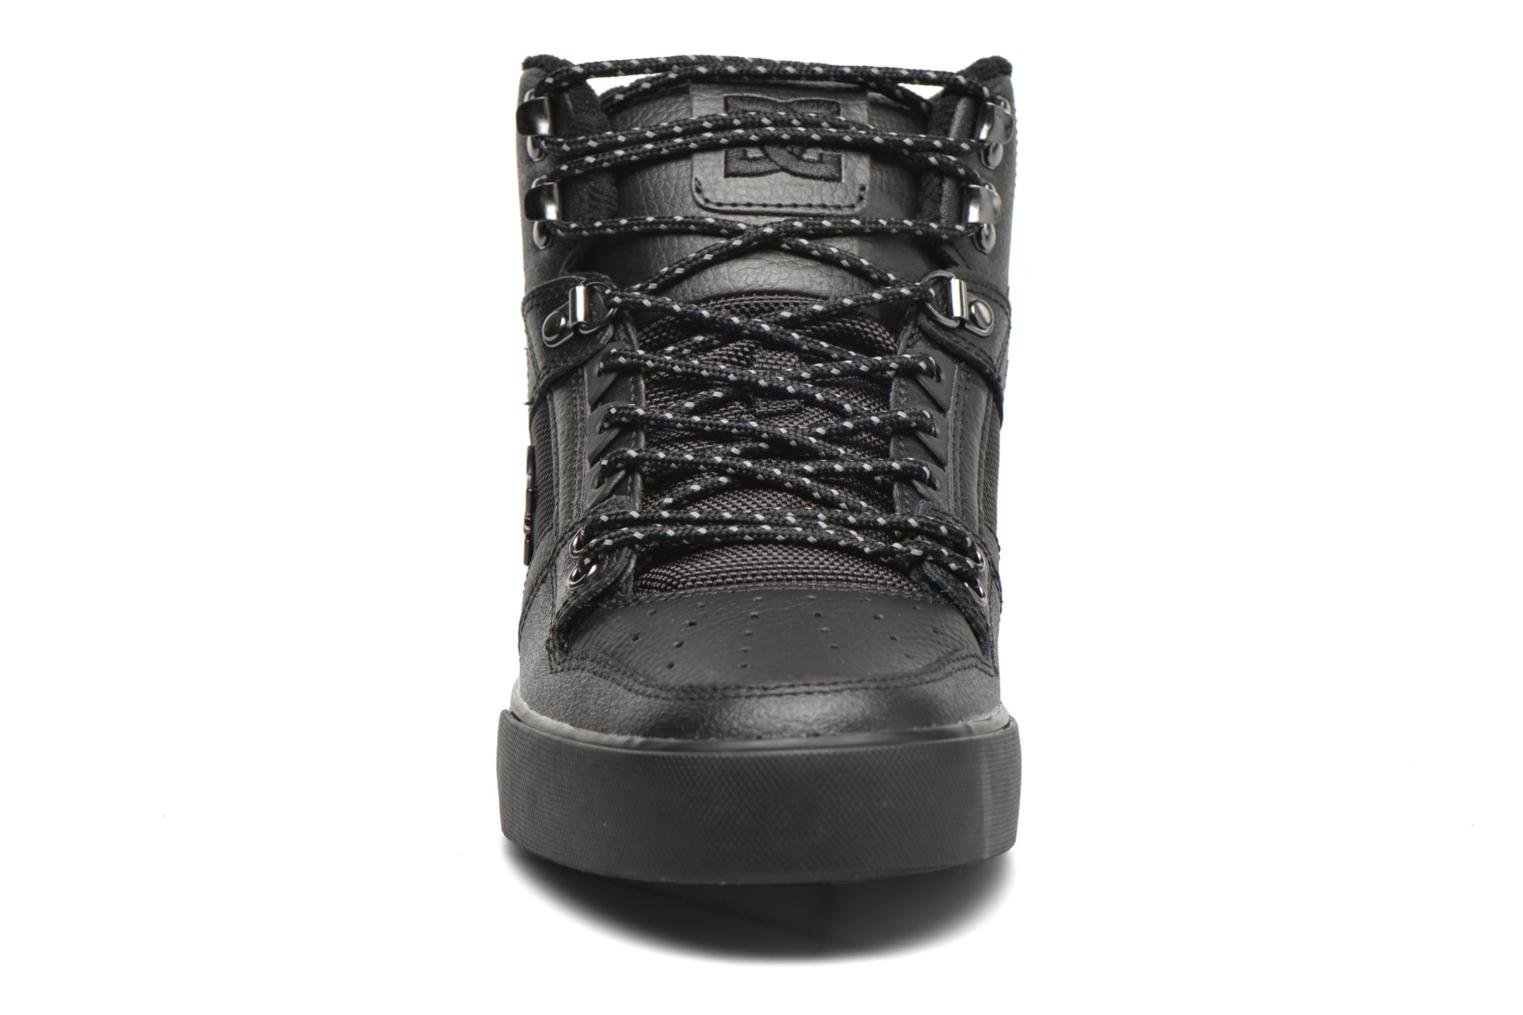 Spartan Hi WC SE Black 3